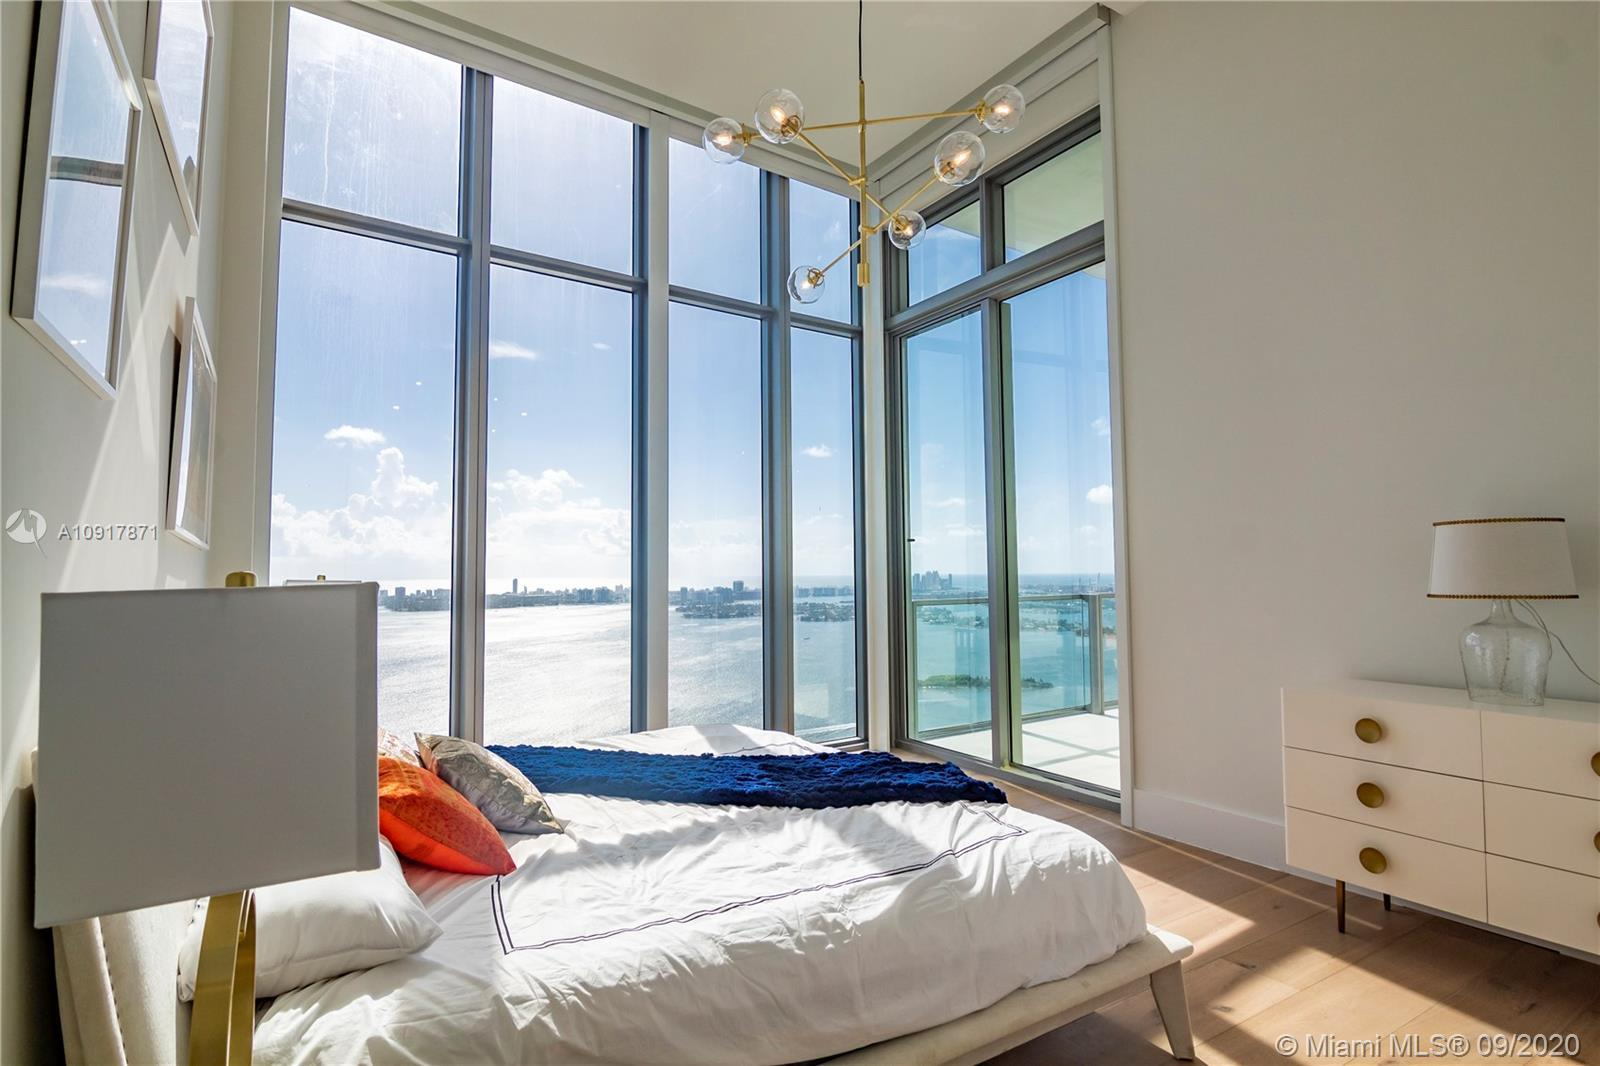 Spectacular 5 bedroom penthouse at the Biscayne Beach condominium. Fully furnished turn key. Incredi